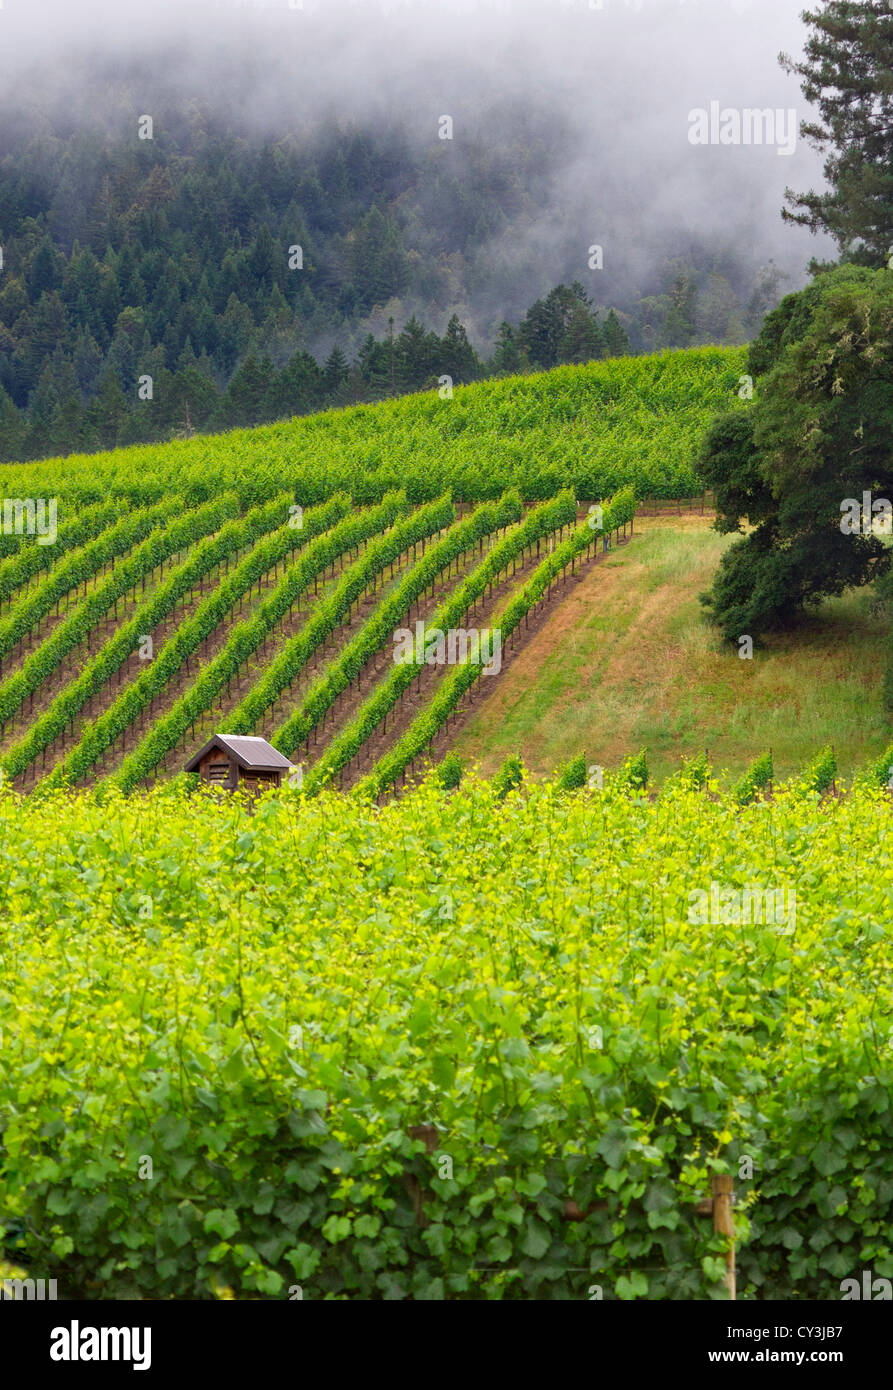 Vineyard views of the Anderson Valley wine country in Northern California. - Stock Image